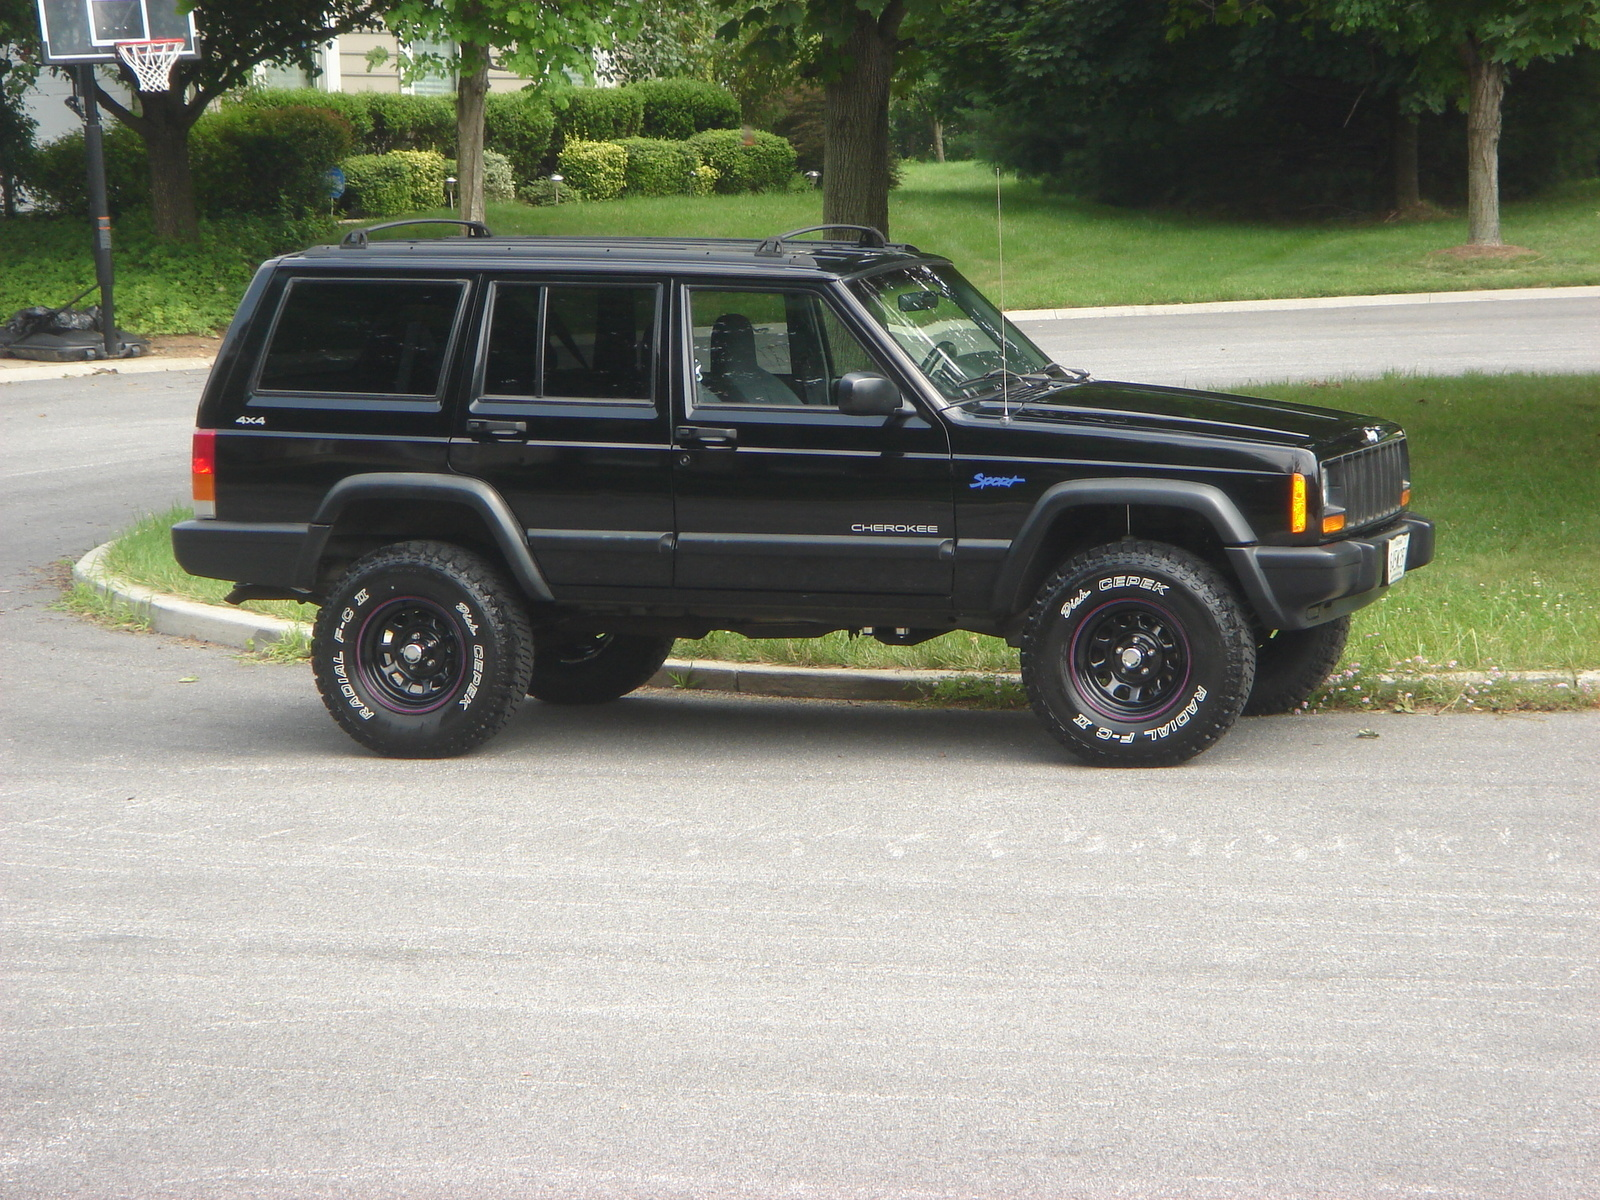 Grand Cherokee 2014 >> 1997 Jeep Cherokee - Overview - CarGurus